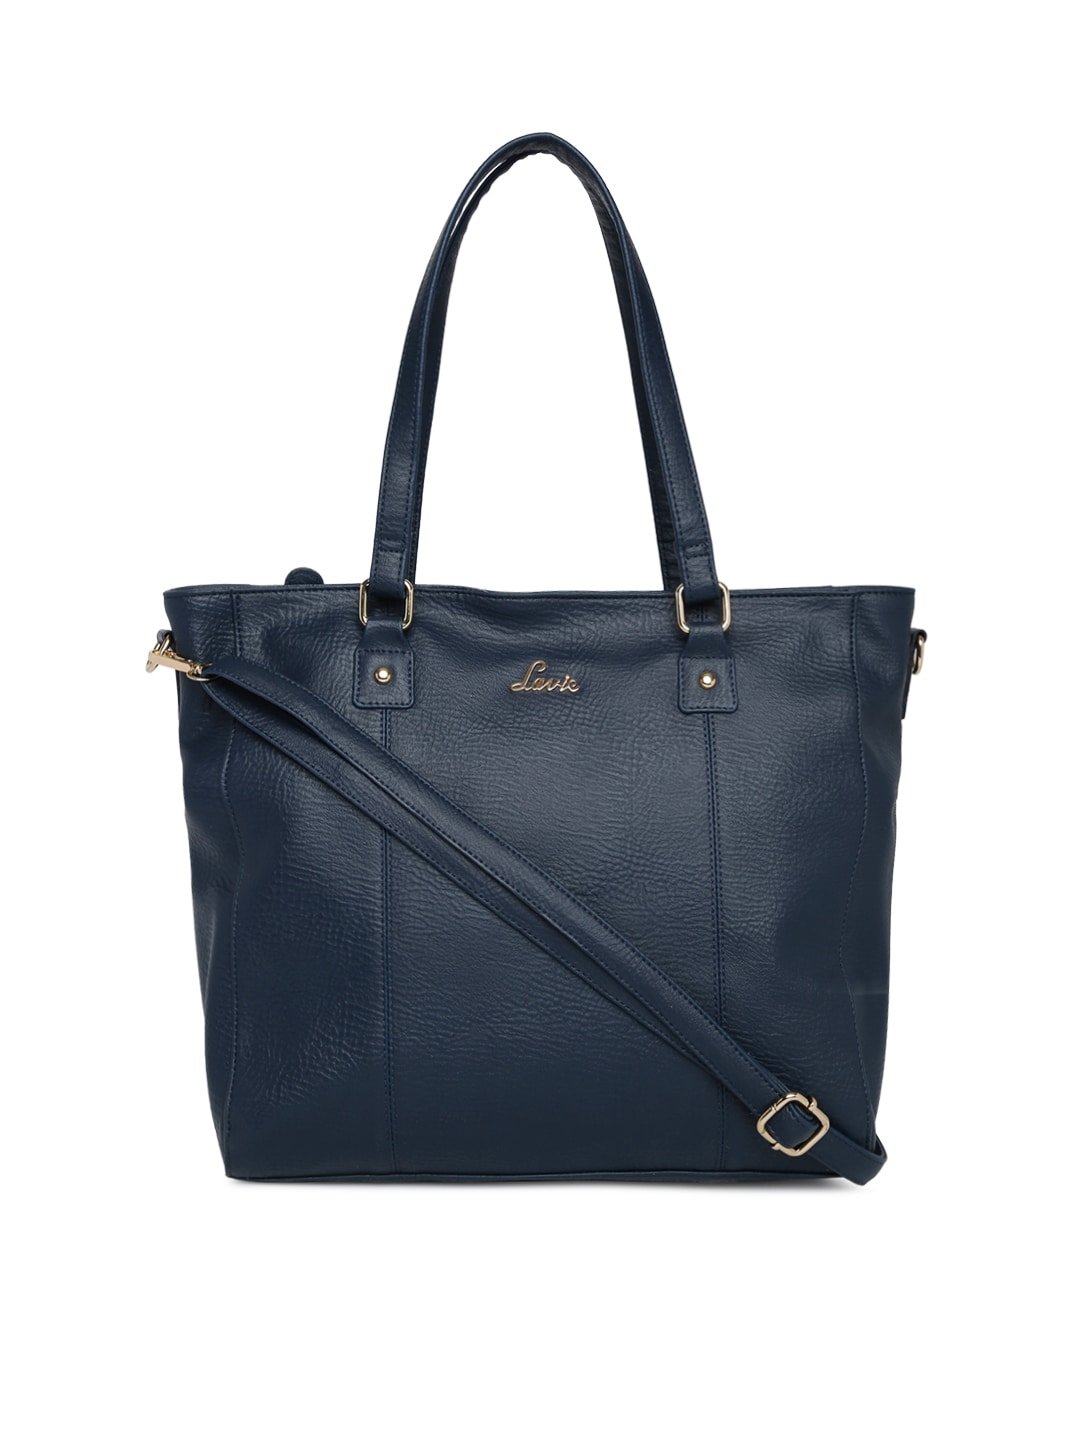 Handbags For Women - Exclusive Women Handbags Online at Myntra 5f4554e3ac1bf